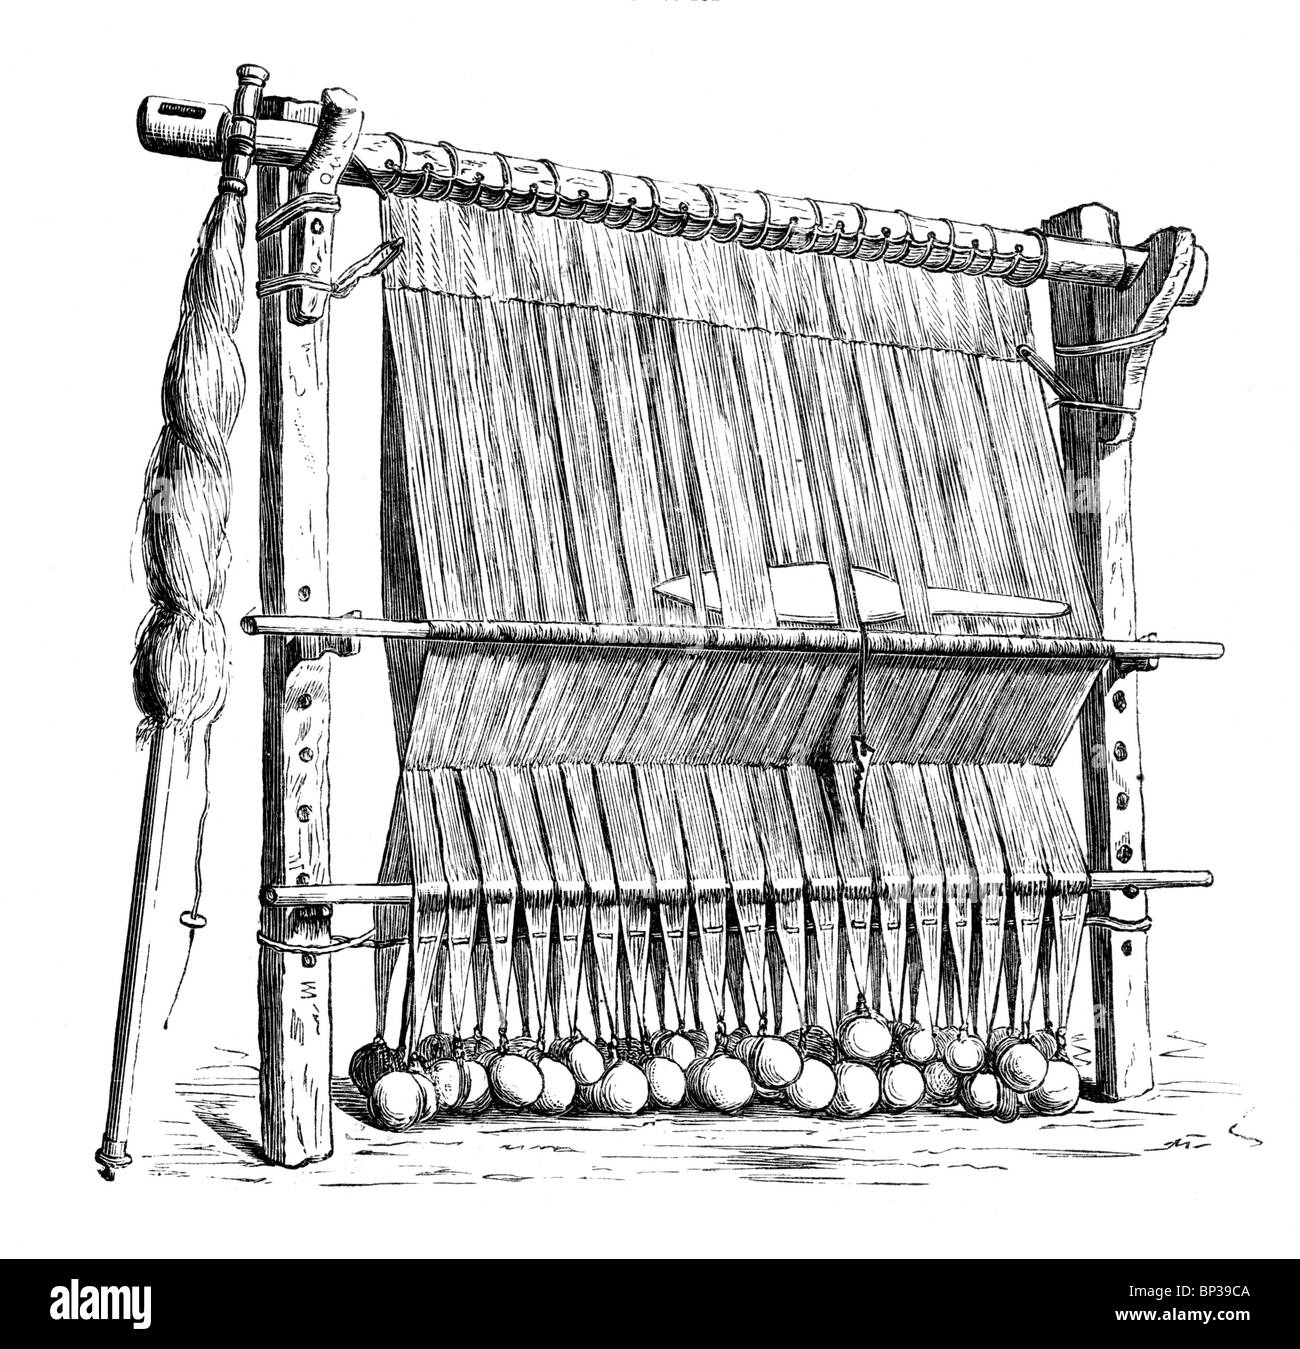 Black and White Illustration; 12th century weaving loom from the Faroe Isles - Stock Image